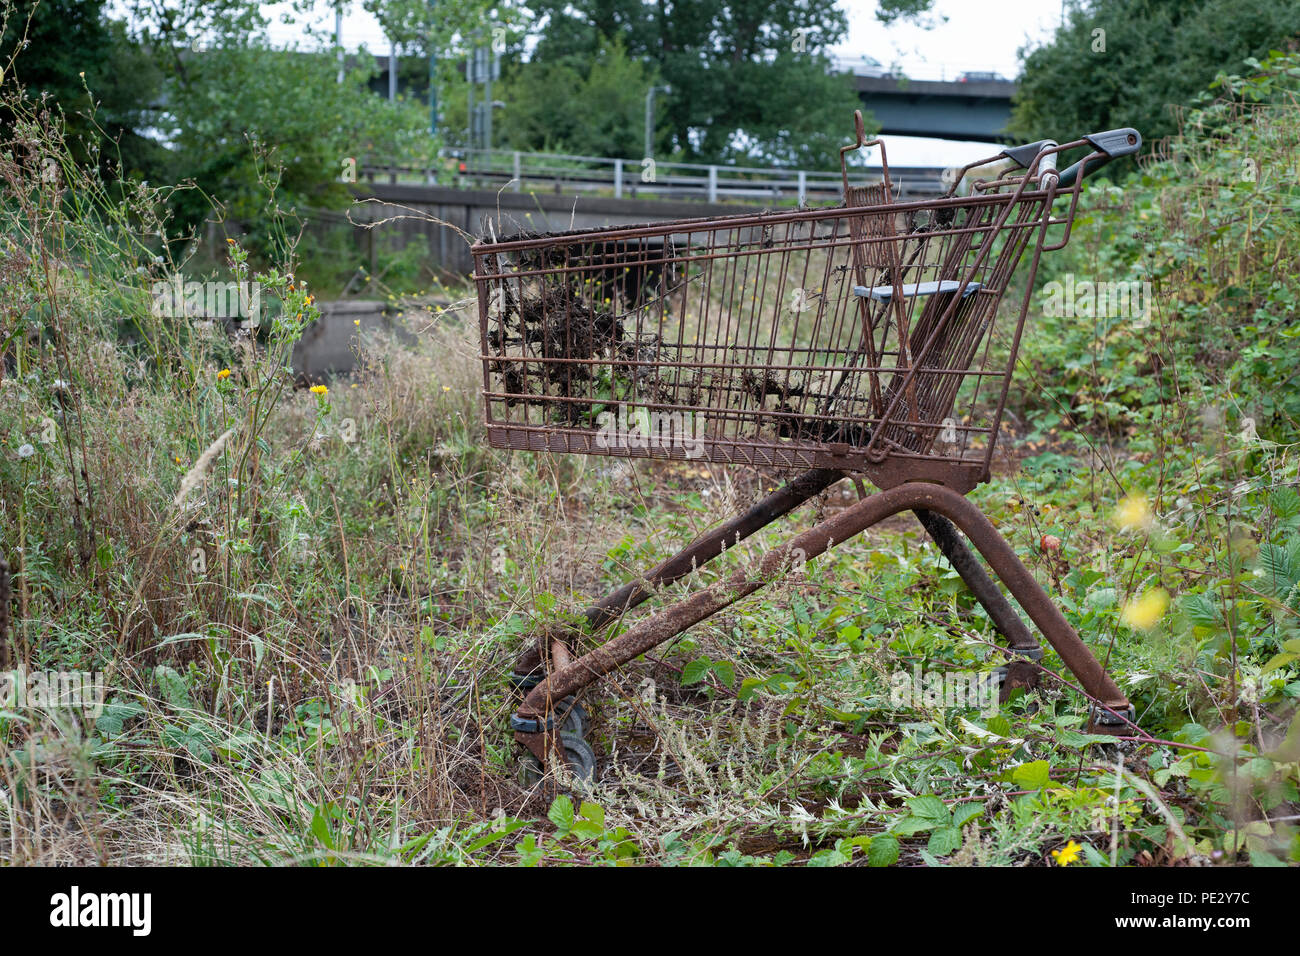 Dumped supermarket trolley, River Brent, near Brent Reservoir, Brent, London, United Kingdom Stock Photo